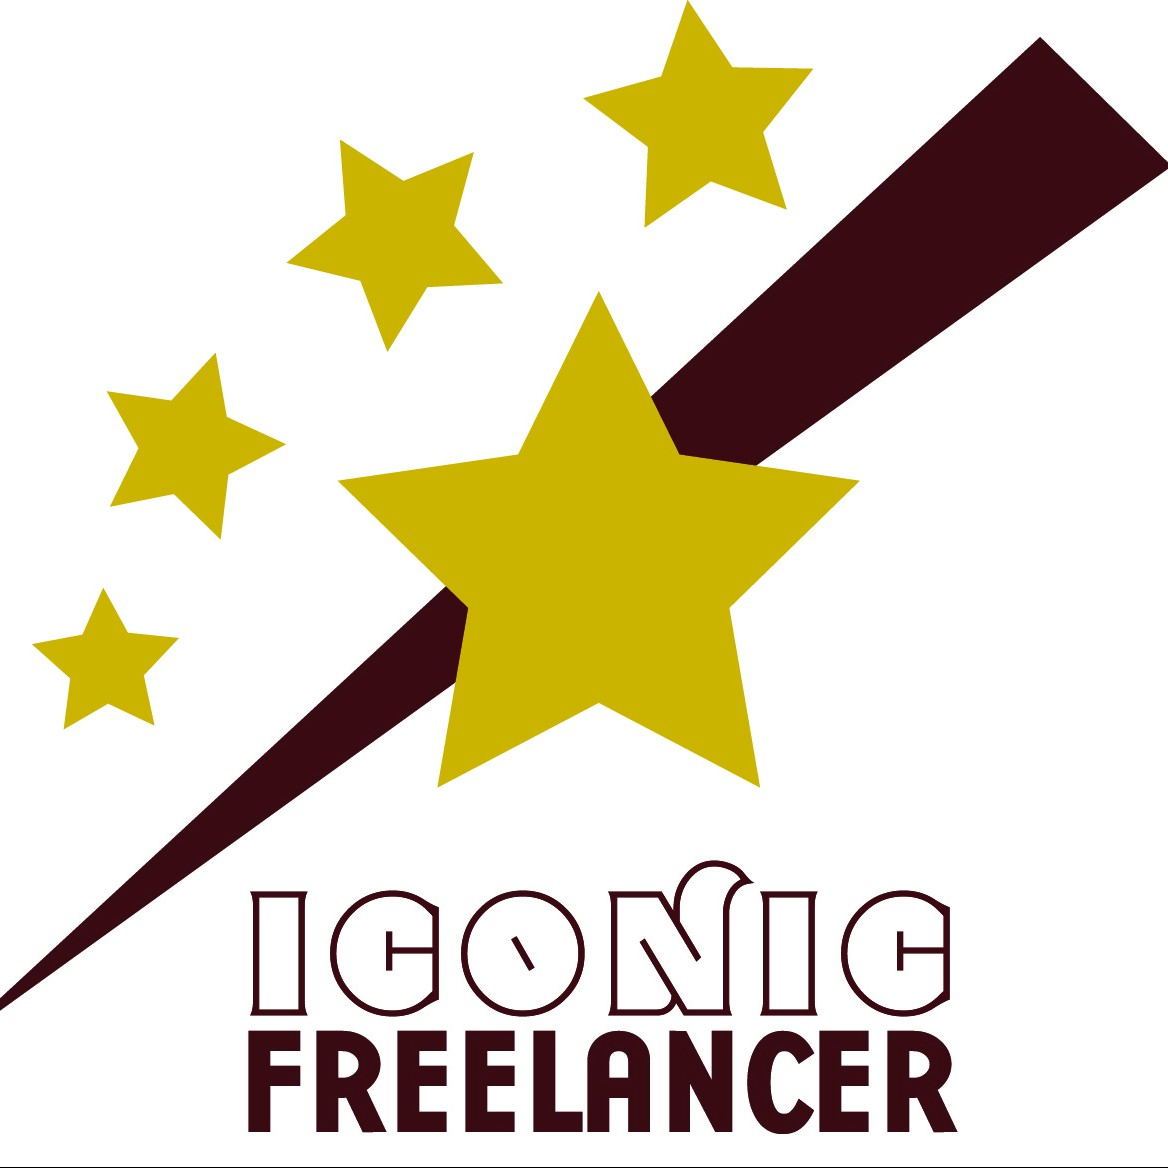 Iconic Freelancer's logo